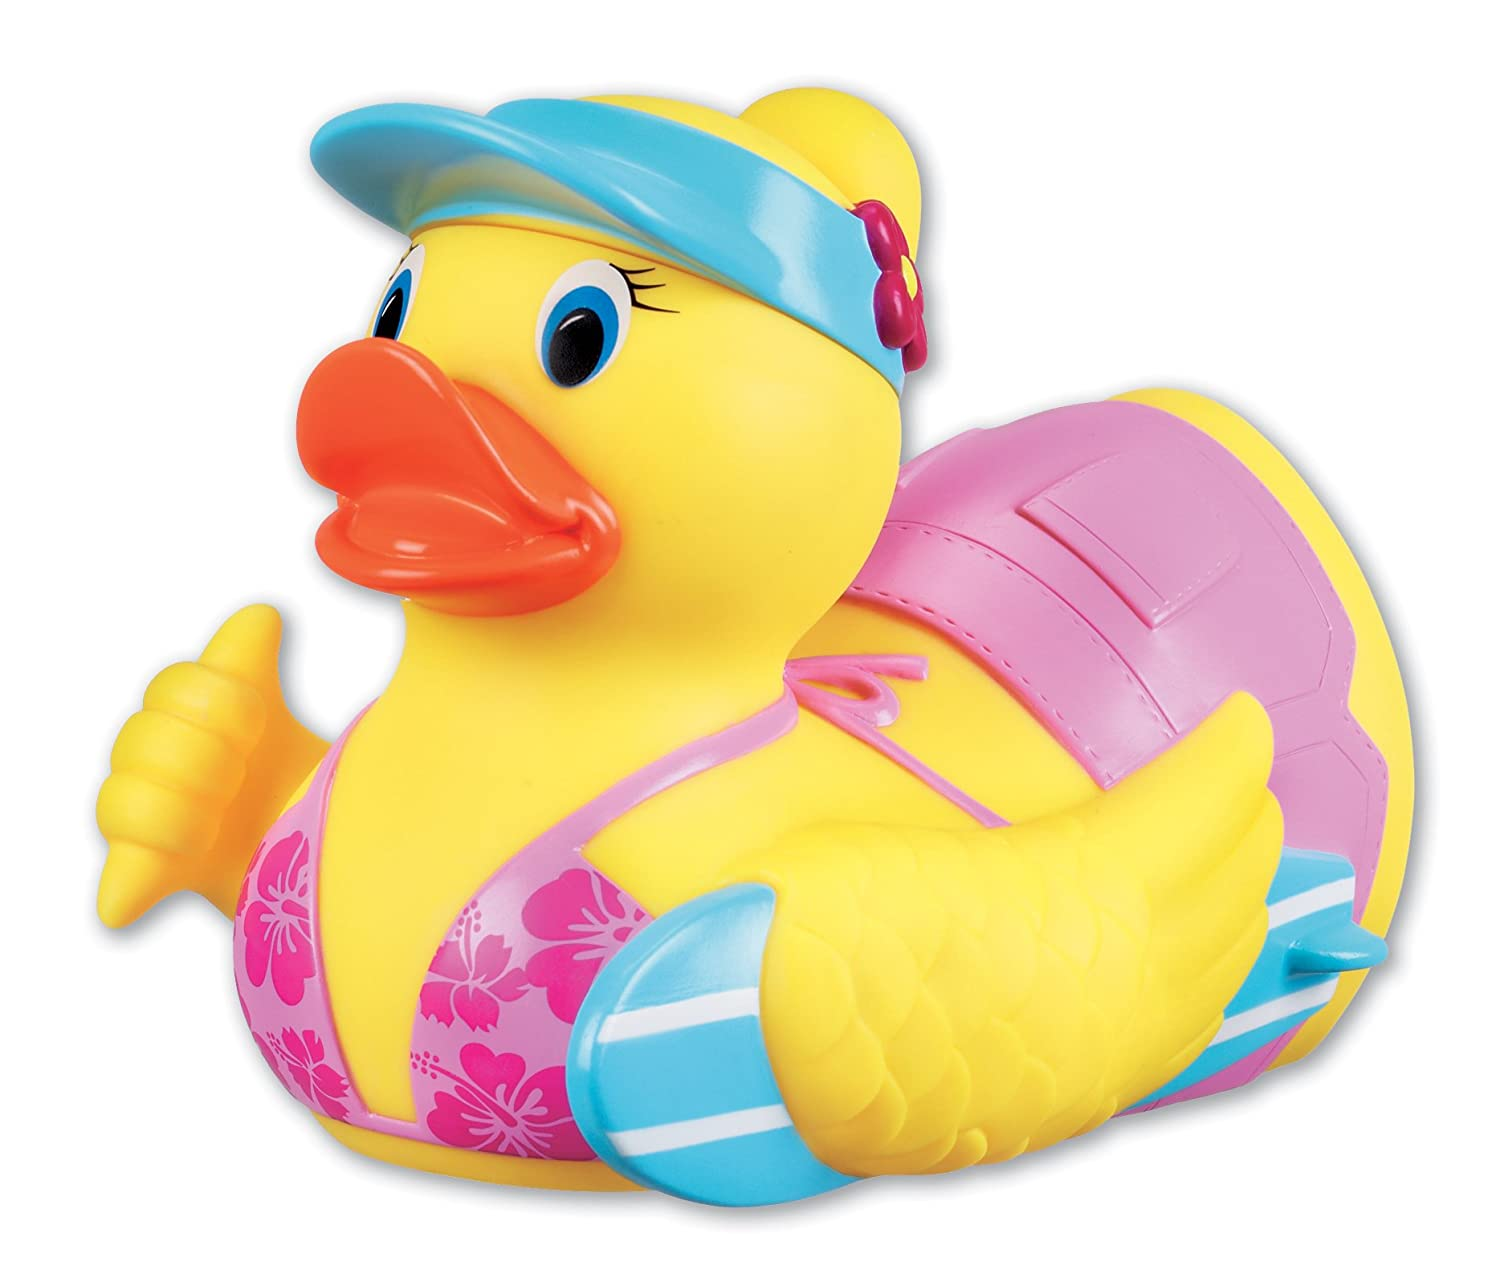 Amazon.com: Munchkin Surfer Ducky Boquilla Guardia ...